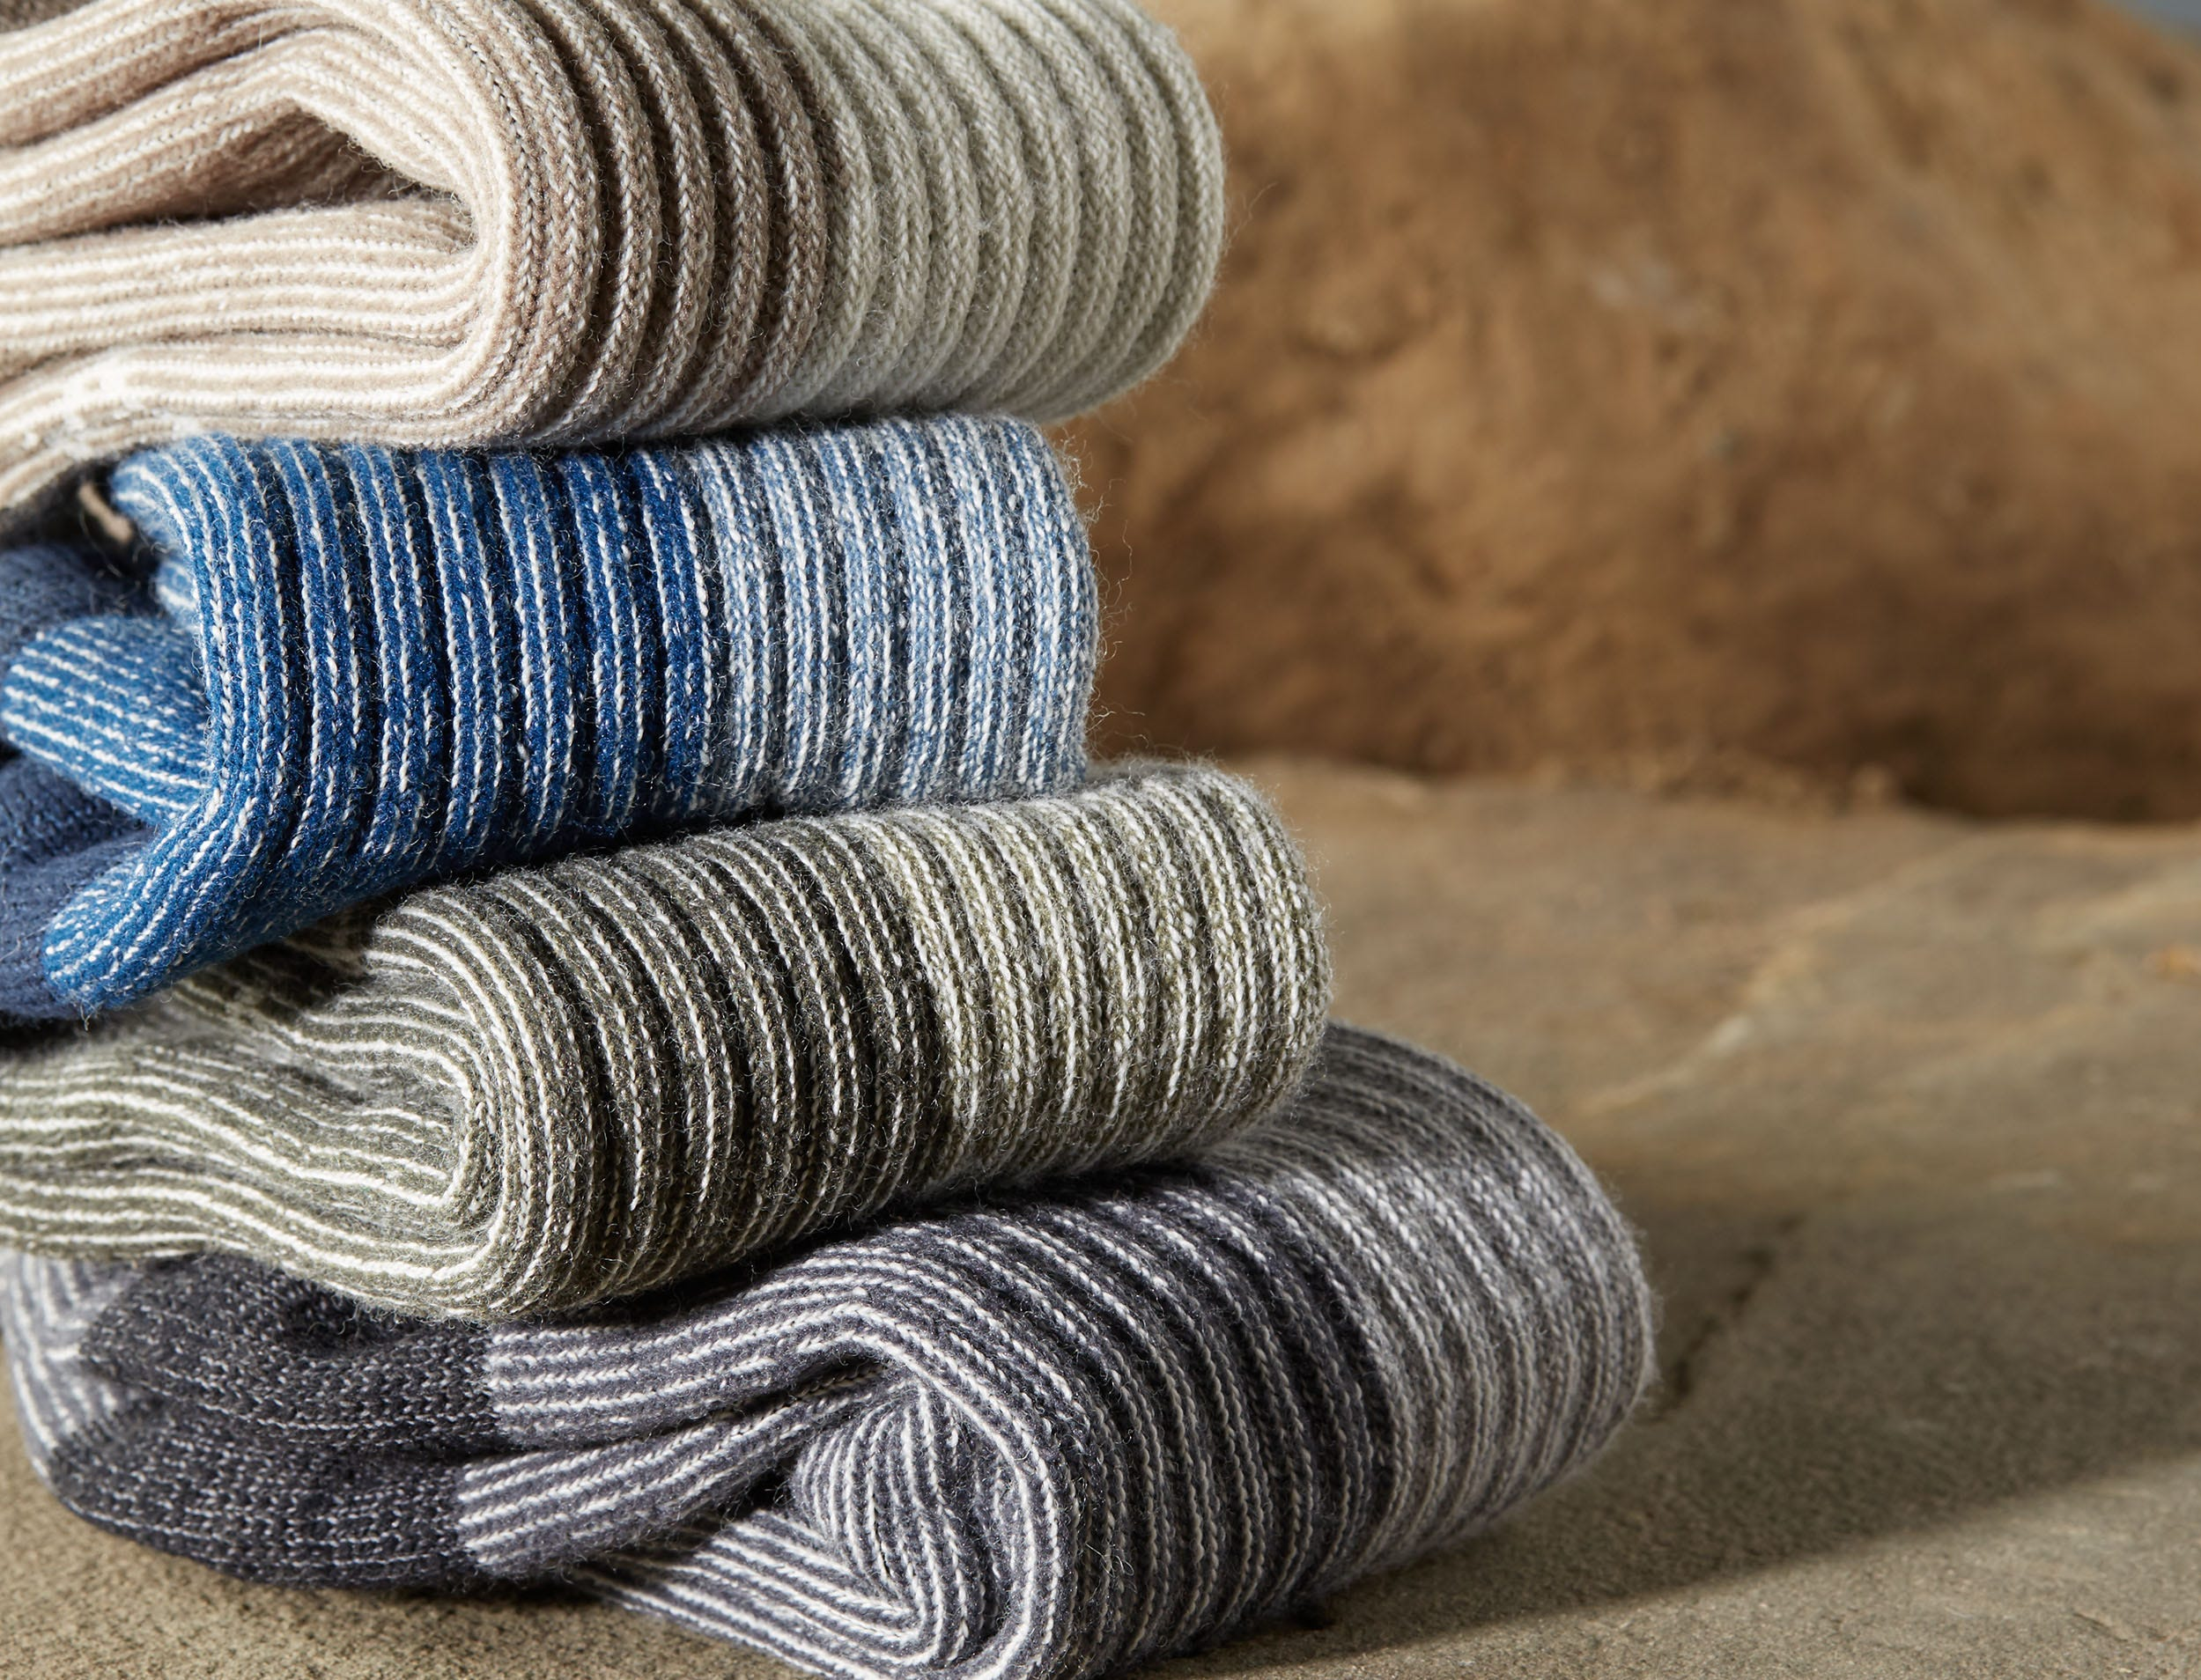 """Among sustainability efforts, outdoor gear and clothing seller REI only sells wool socks made of """"responsibly-sourced"""" wool. The company says that means wool that comes from farms with a progressive approach to managing their land, and from sheep that were treated according to leading animal welfare standards."""